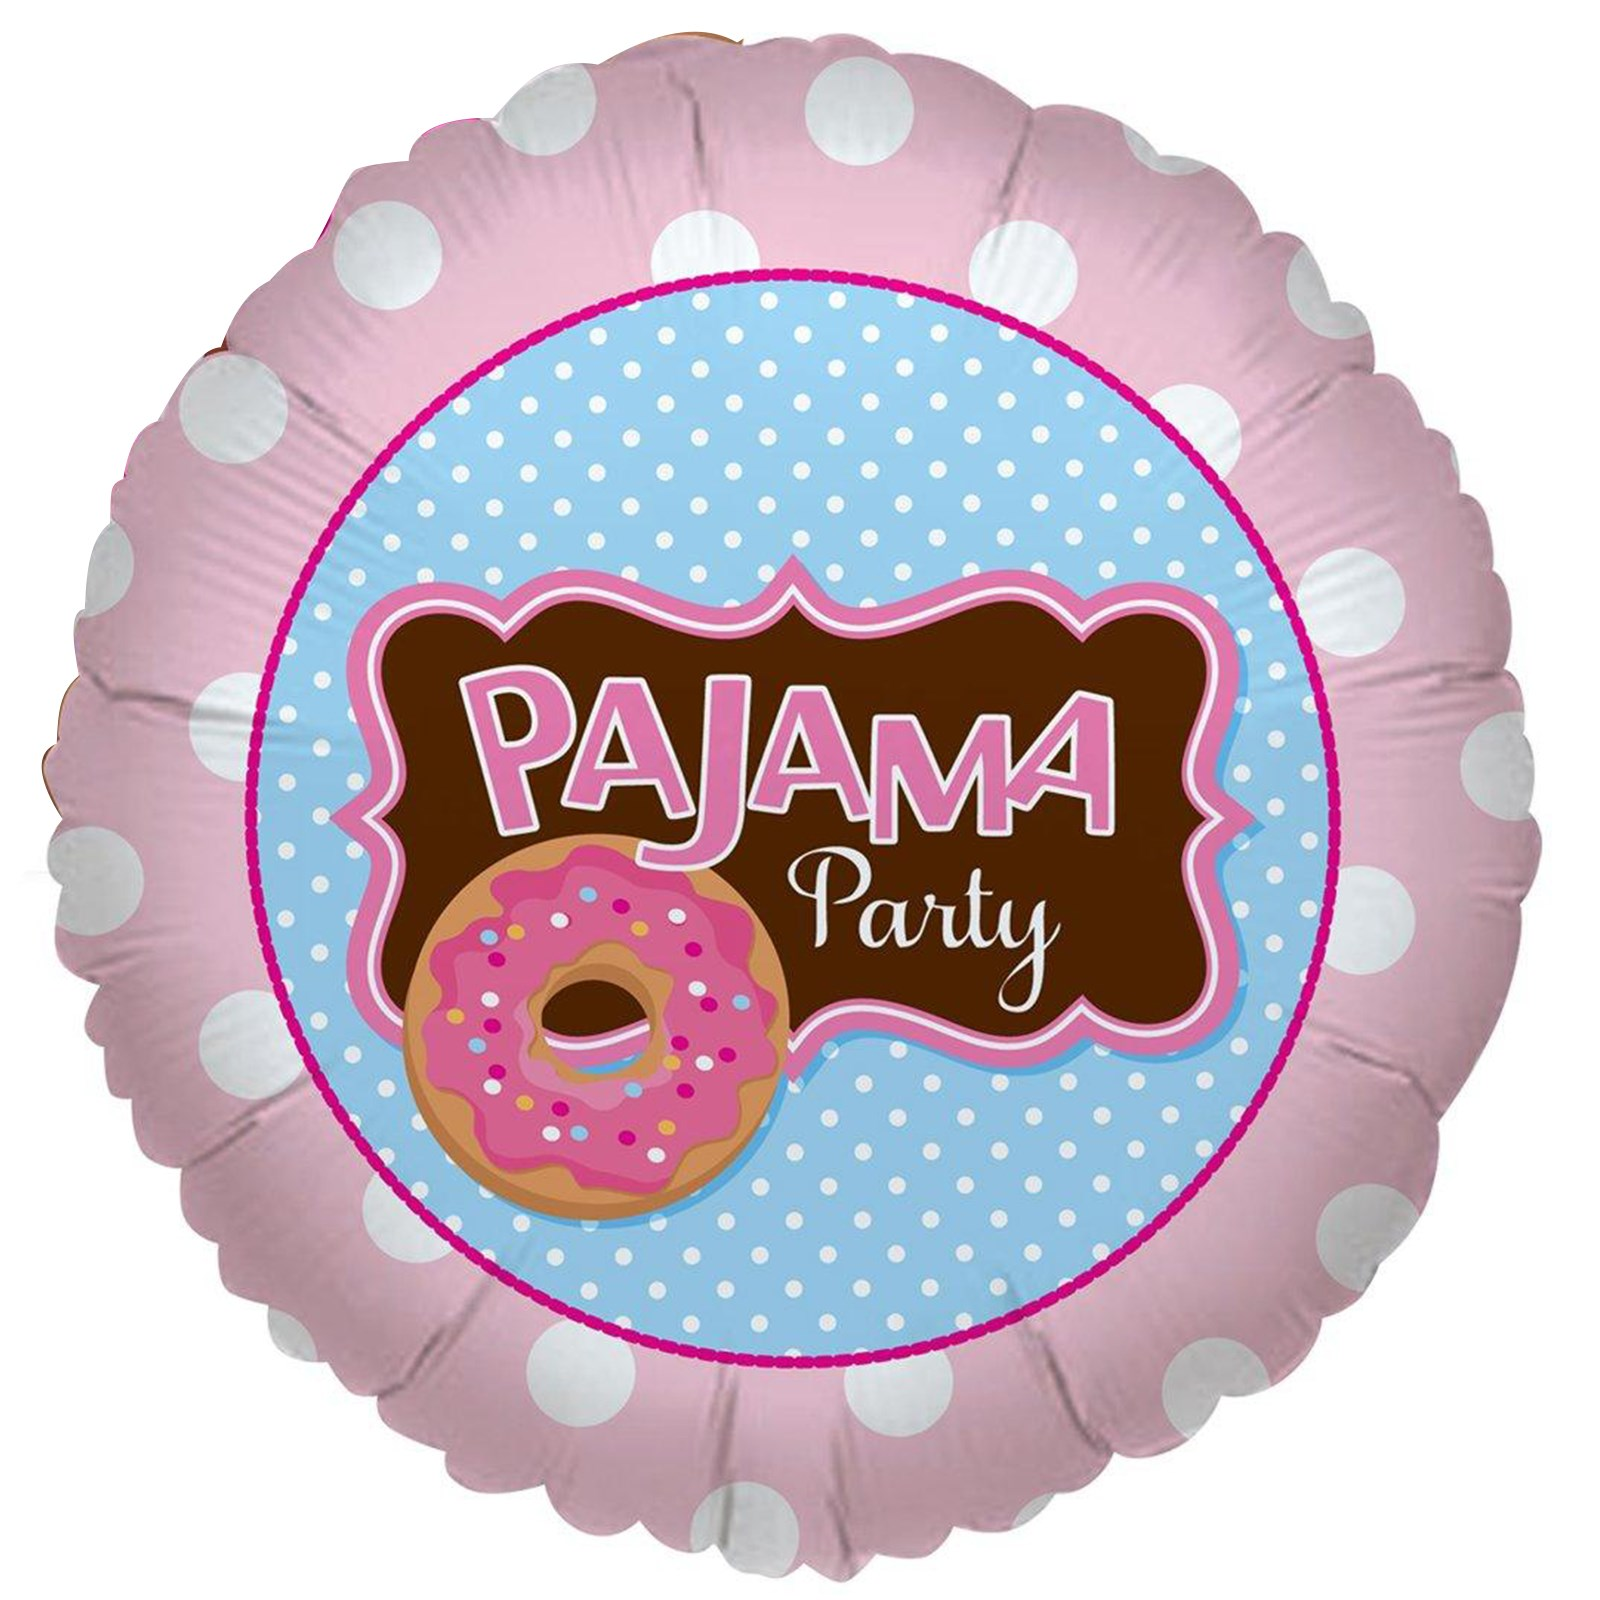 Image of Pajama Party Foil Balloon